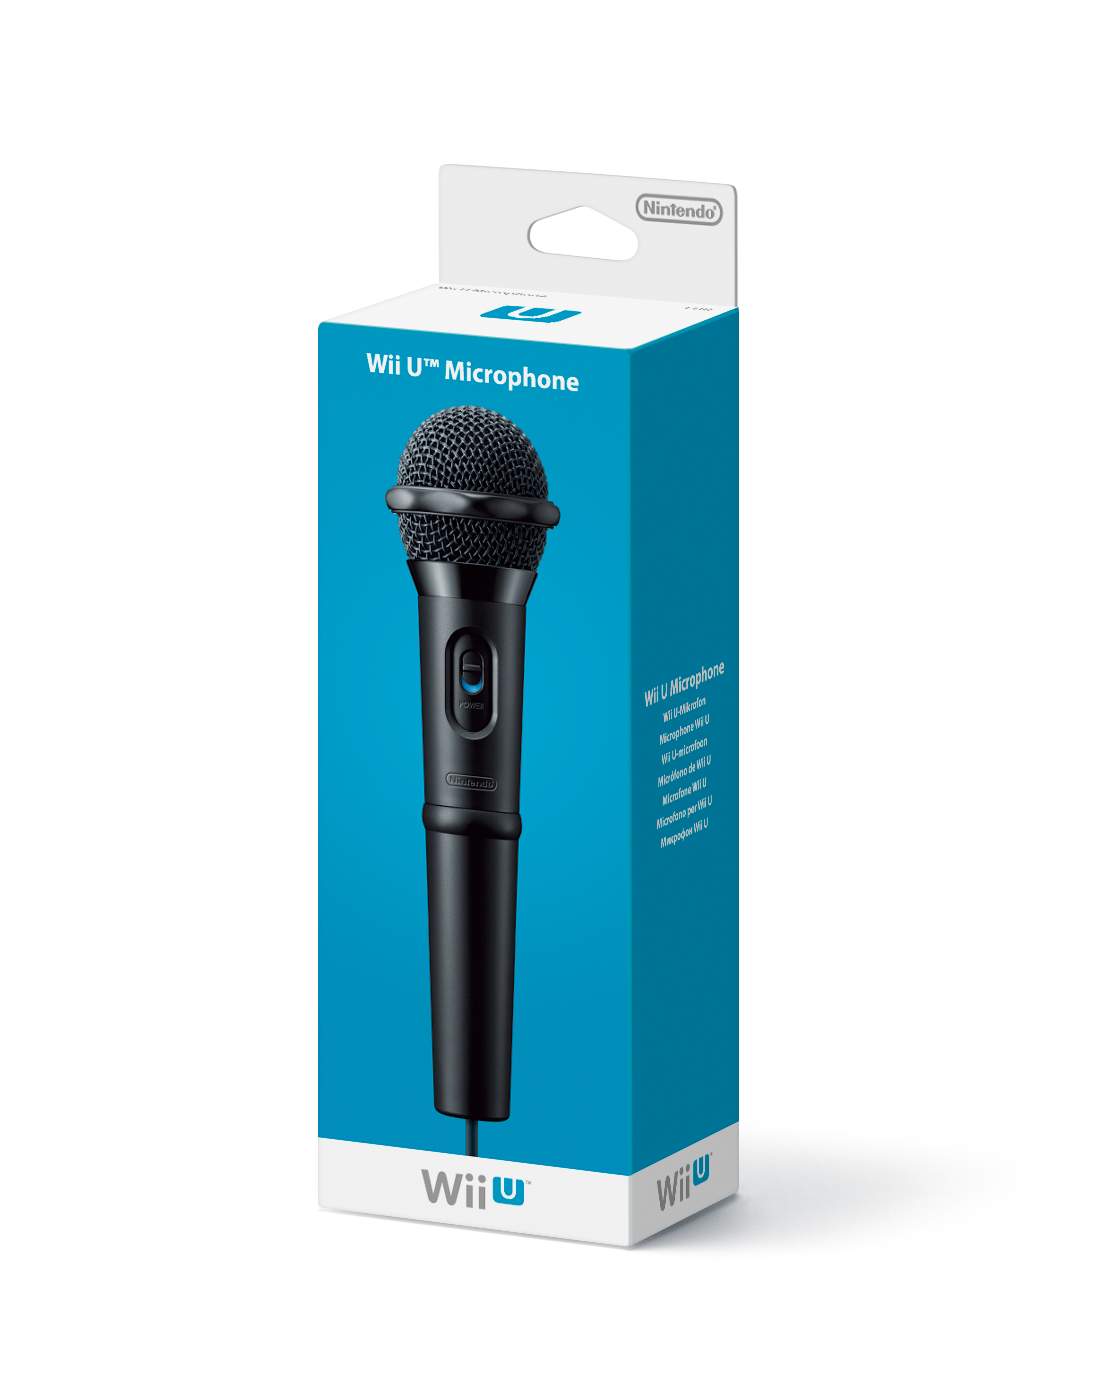 controllers remotes wiiu wired usb microphone as new boxed bid to win was sold for. Black Bedroom Furniture Sets. Home Design Ideas